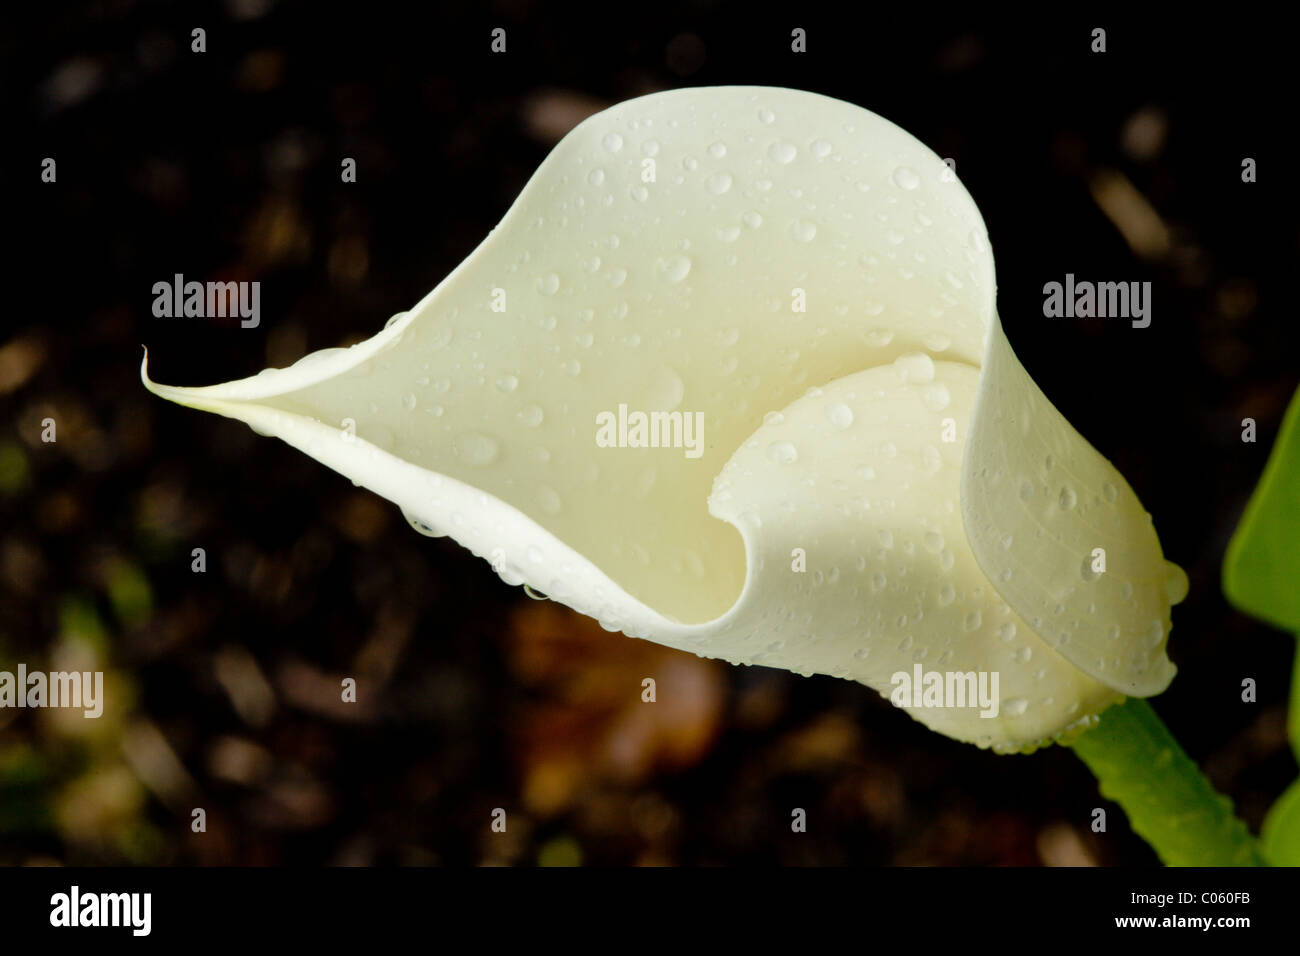 Calla Lily Flower Bud Opening. A creamy colored calla flower gradually opens after a rain shower covers its petal - Stock Image